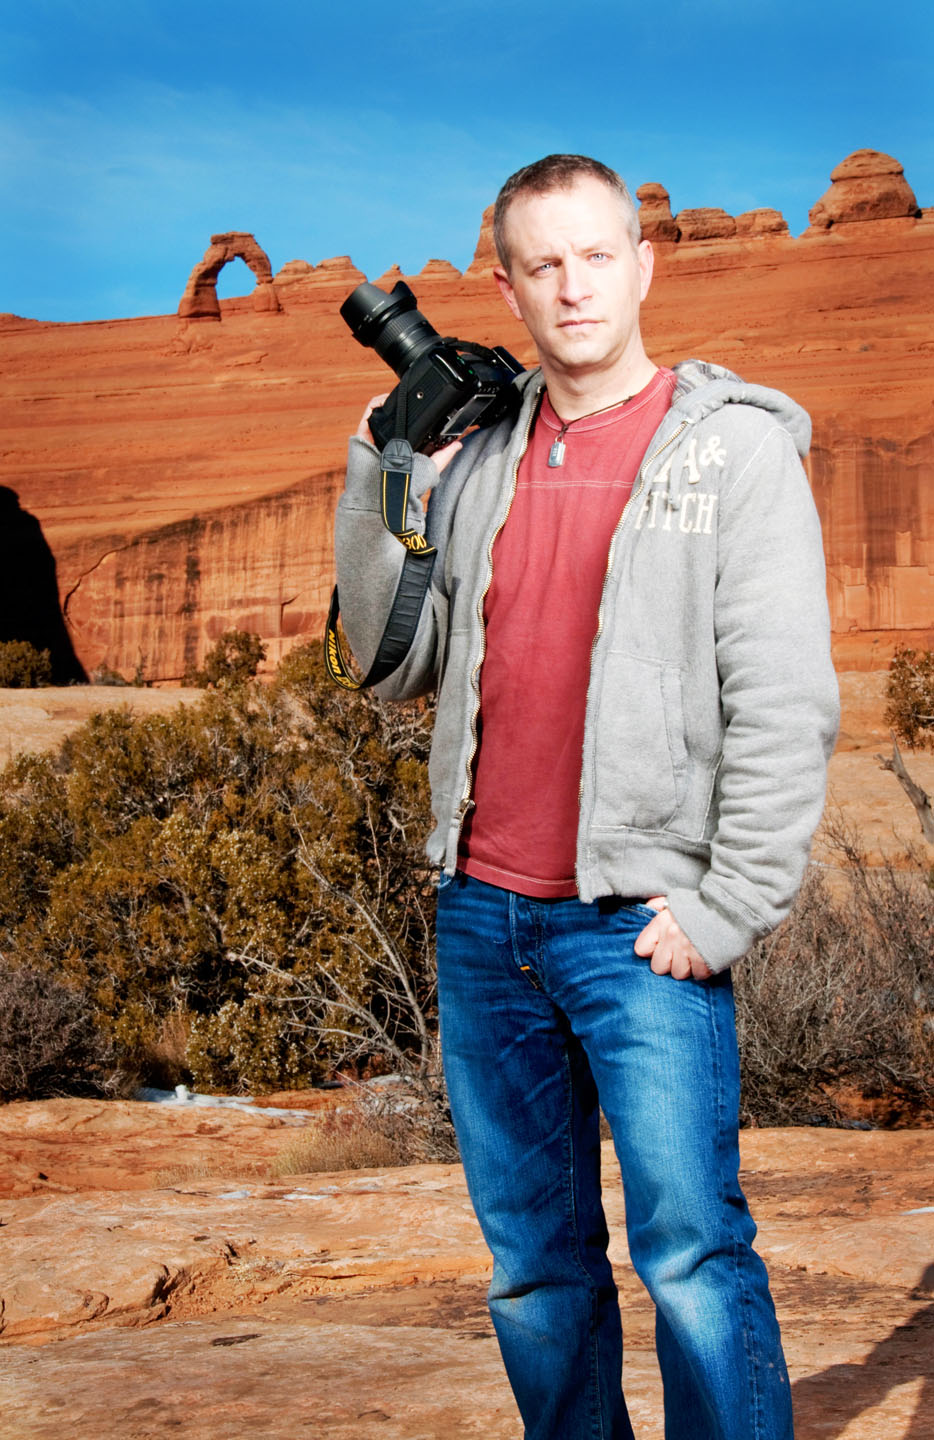 dav.d by David Newkirk and photographed in Moab in front of the Delicate Arch